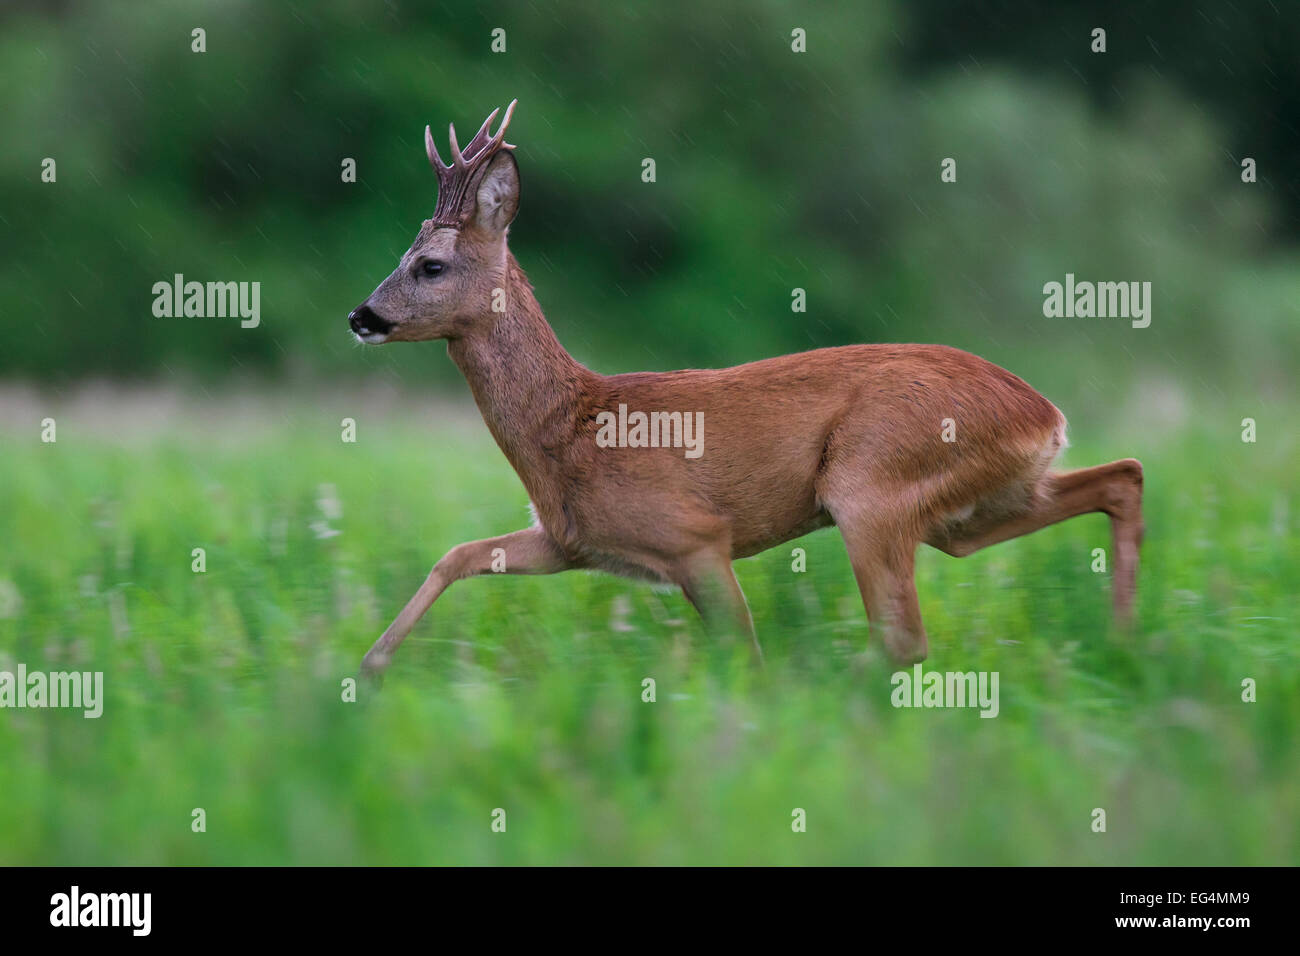 Roe deer (Capreolus capreolus) roebuck running though meadow in the rain in summer - Stock Image